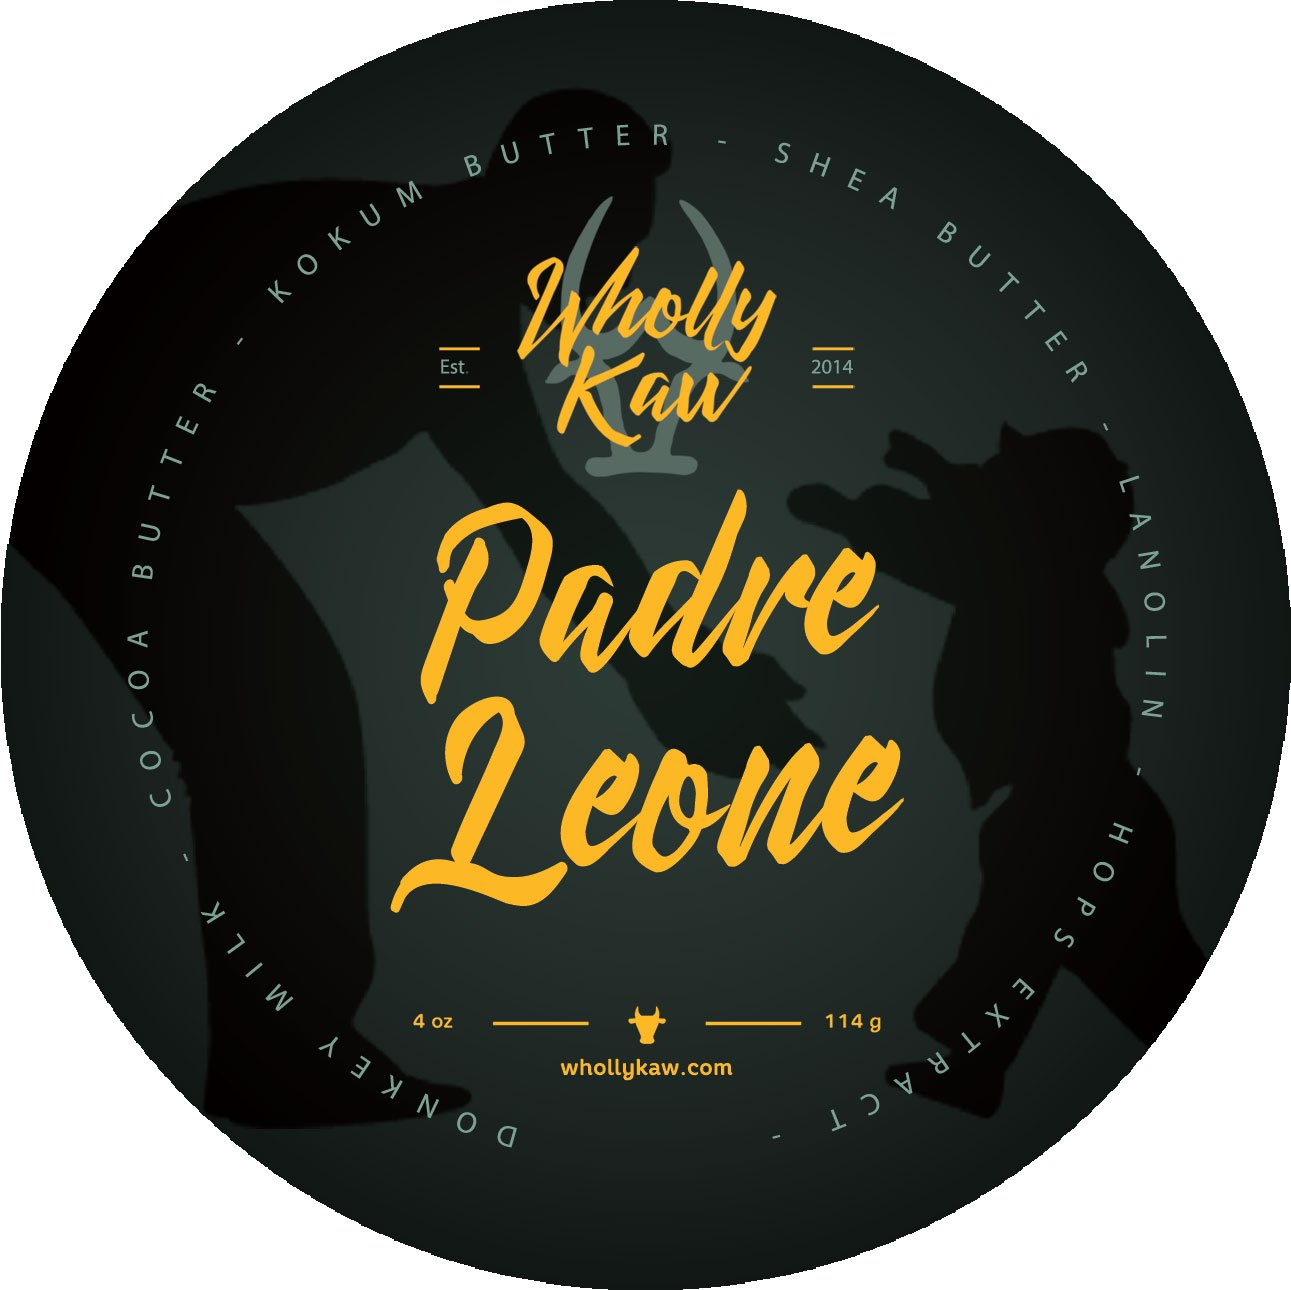 Wholly Kaw - Padre Leone - Soap image